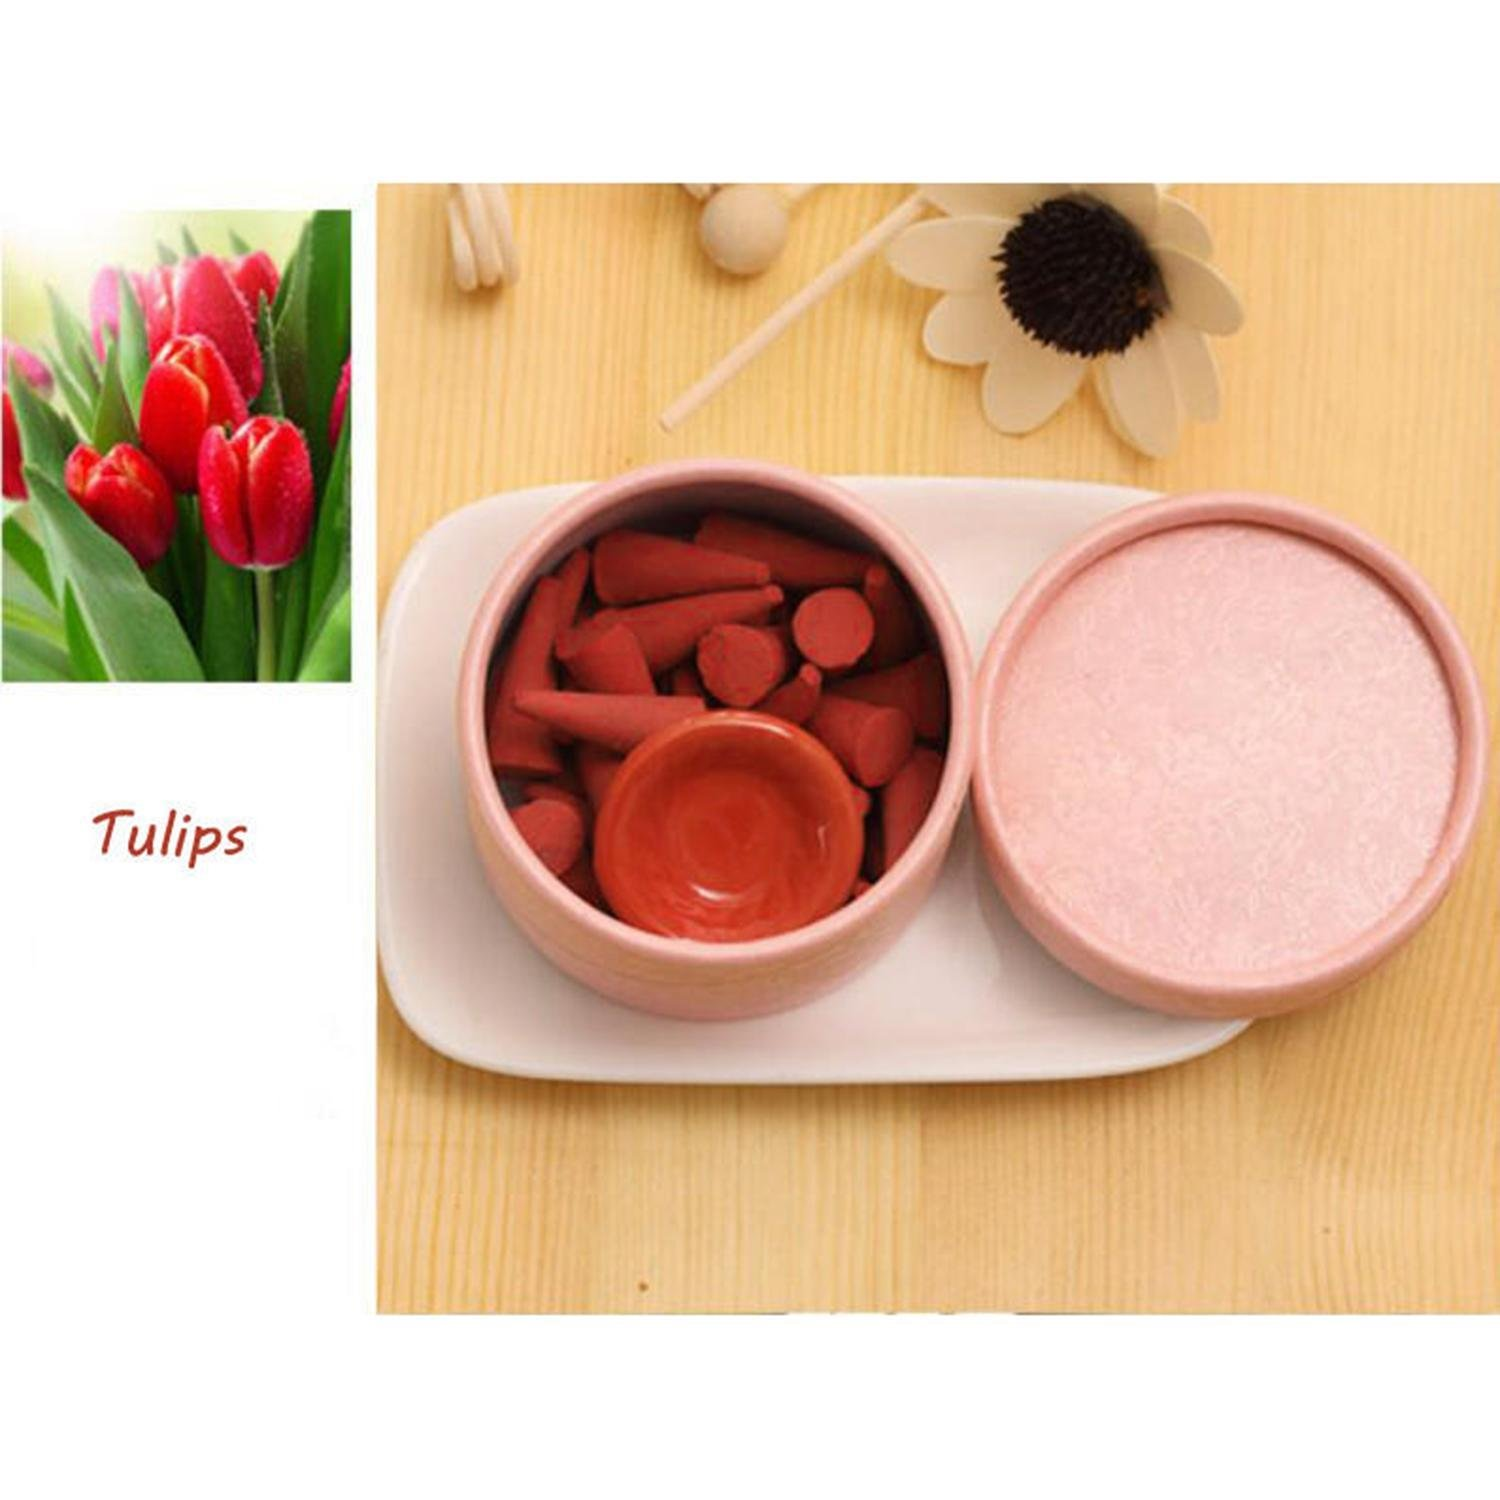 GuGio 1 Box Backflow Incense Cones for Backflow Incense Burner Holder with Spice Tray (Tulips)